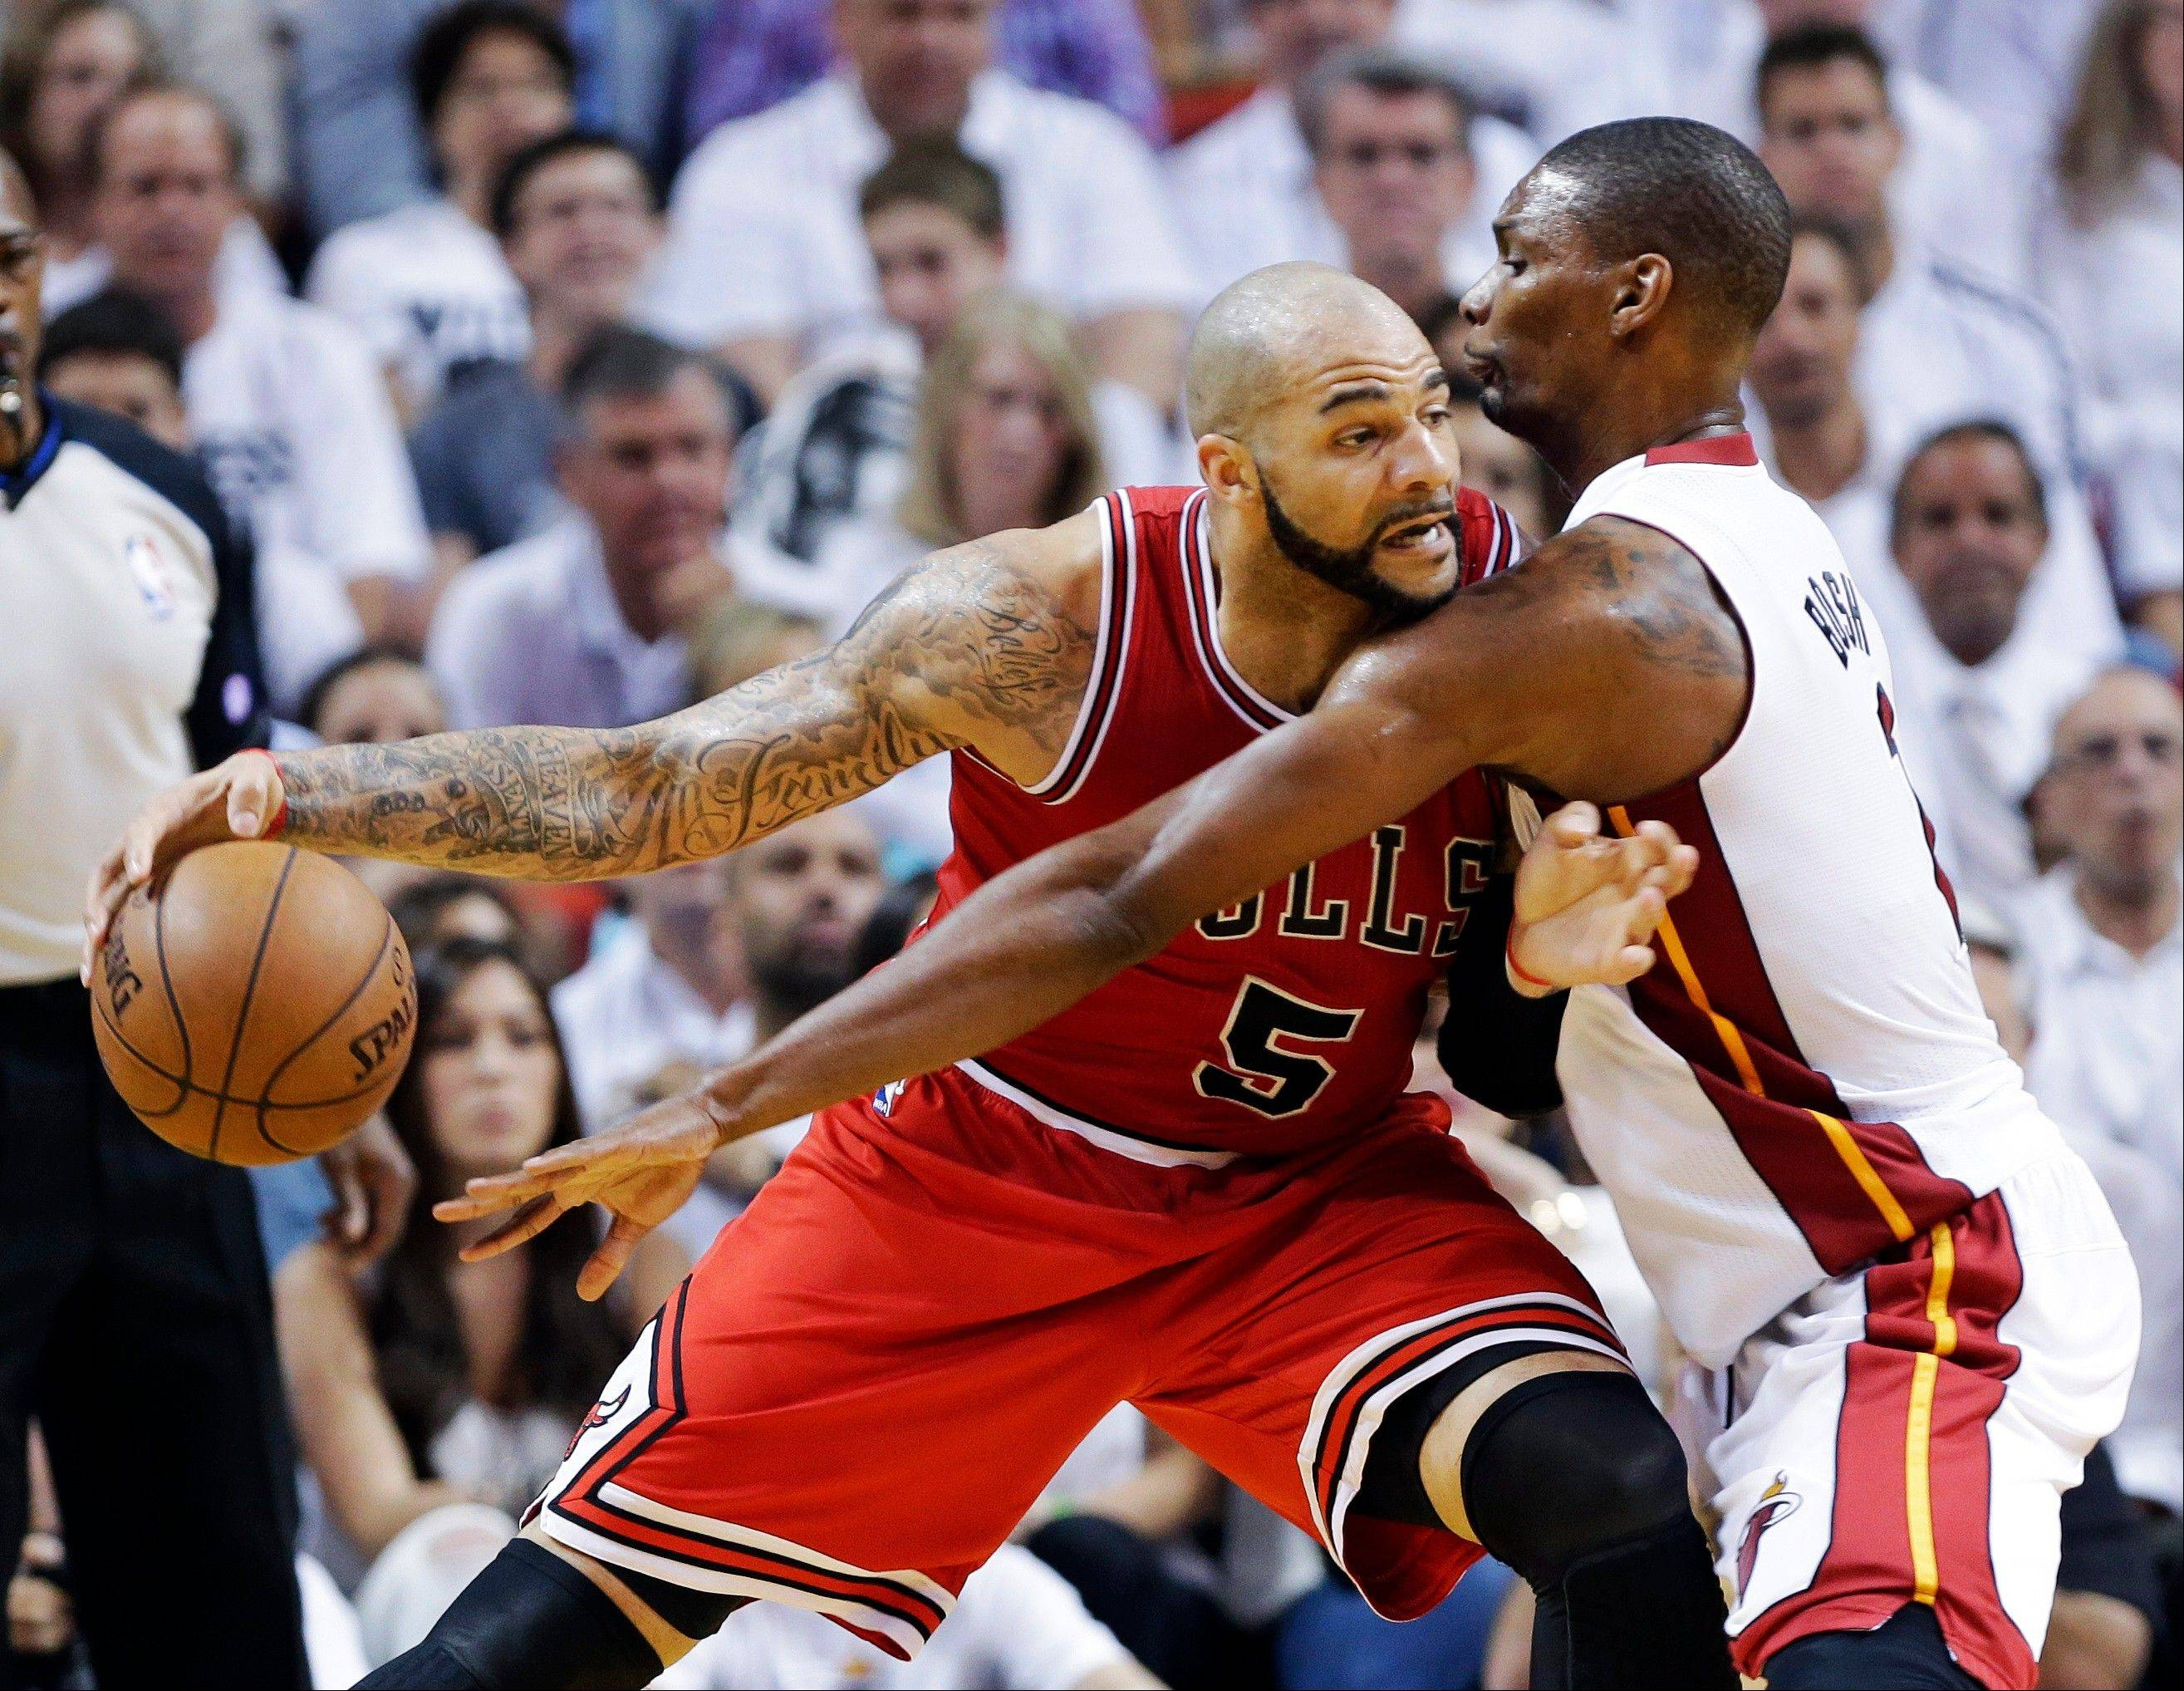 Chicago Bulls forward Carlos Boozer (5) drives against Miami Heat center Chris Bosh during the first half of Game 1 of the NBA basketball playoff series in the Eastern Conference semifinals, Monday, May 6, 2013 in Miami.